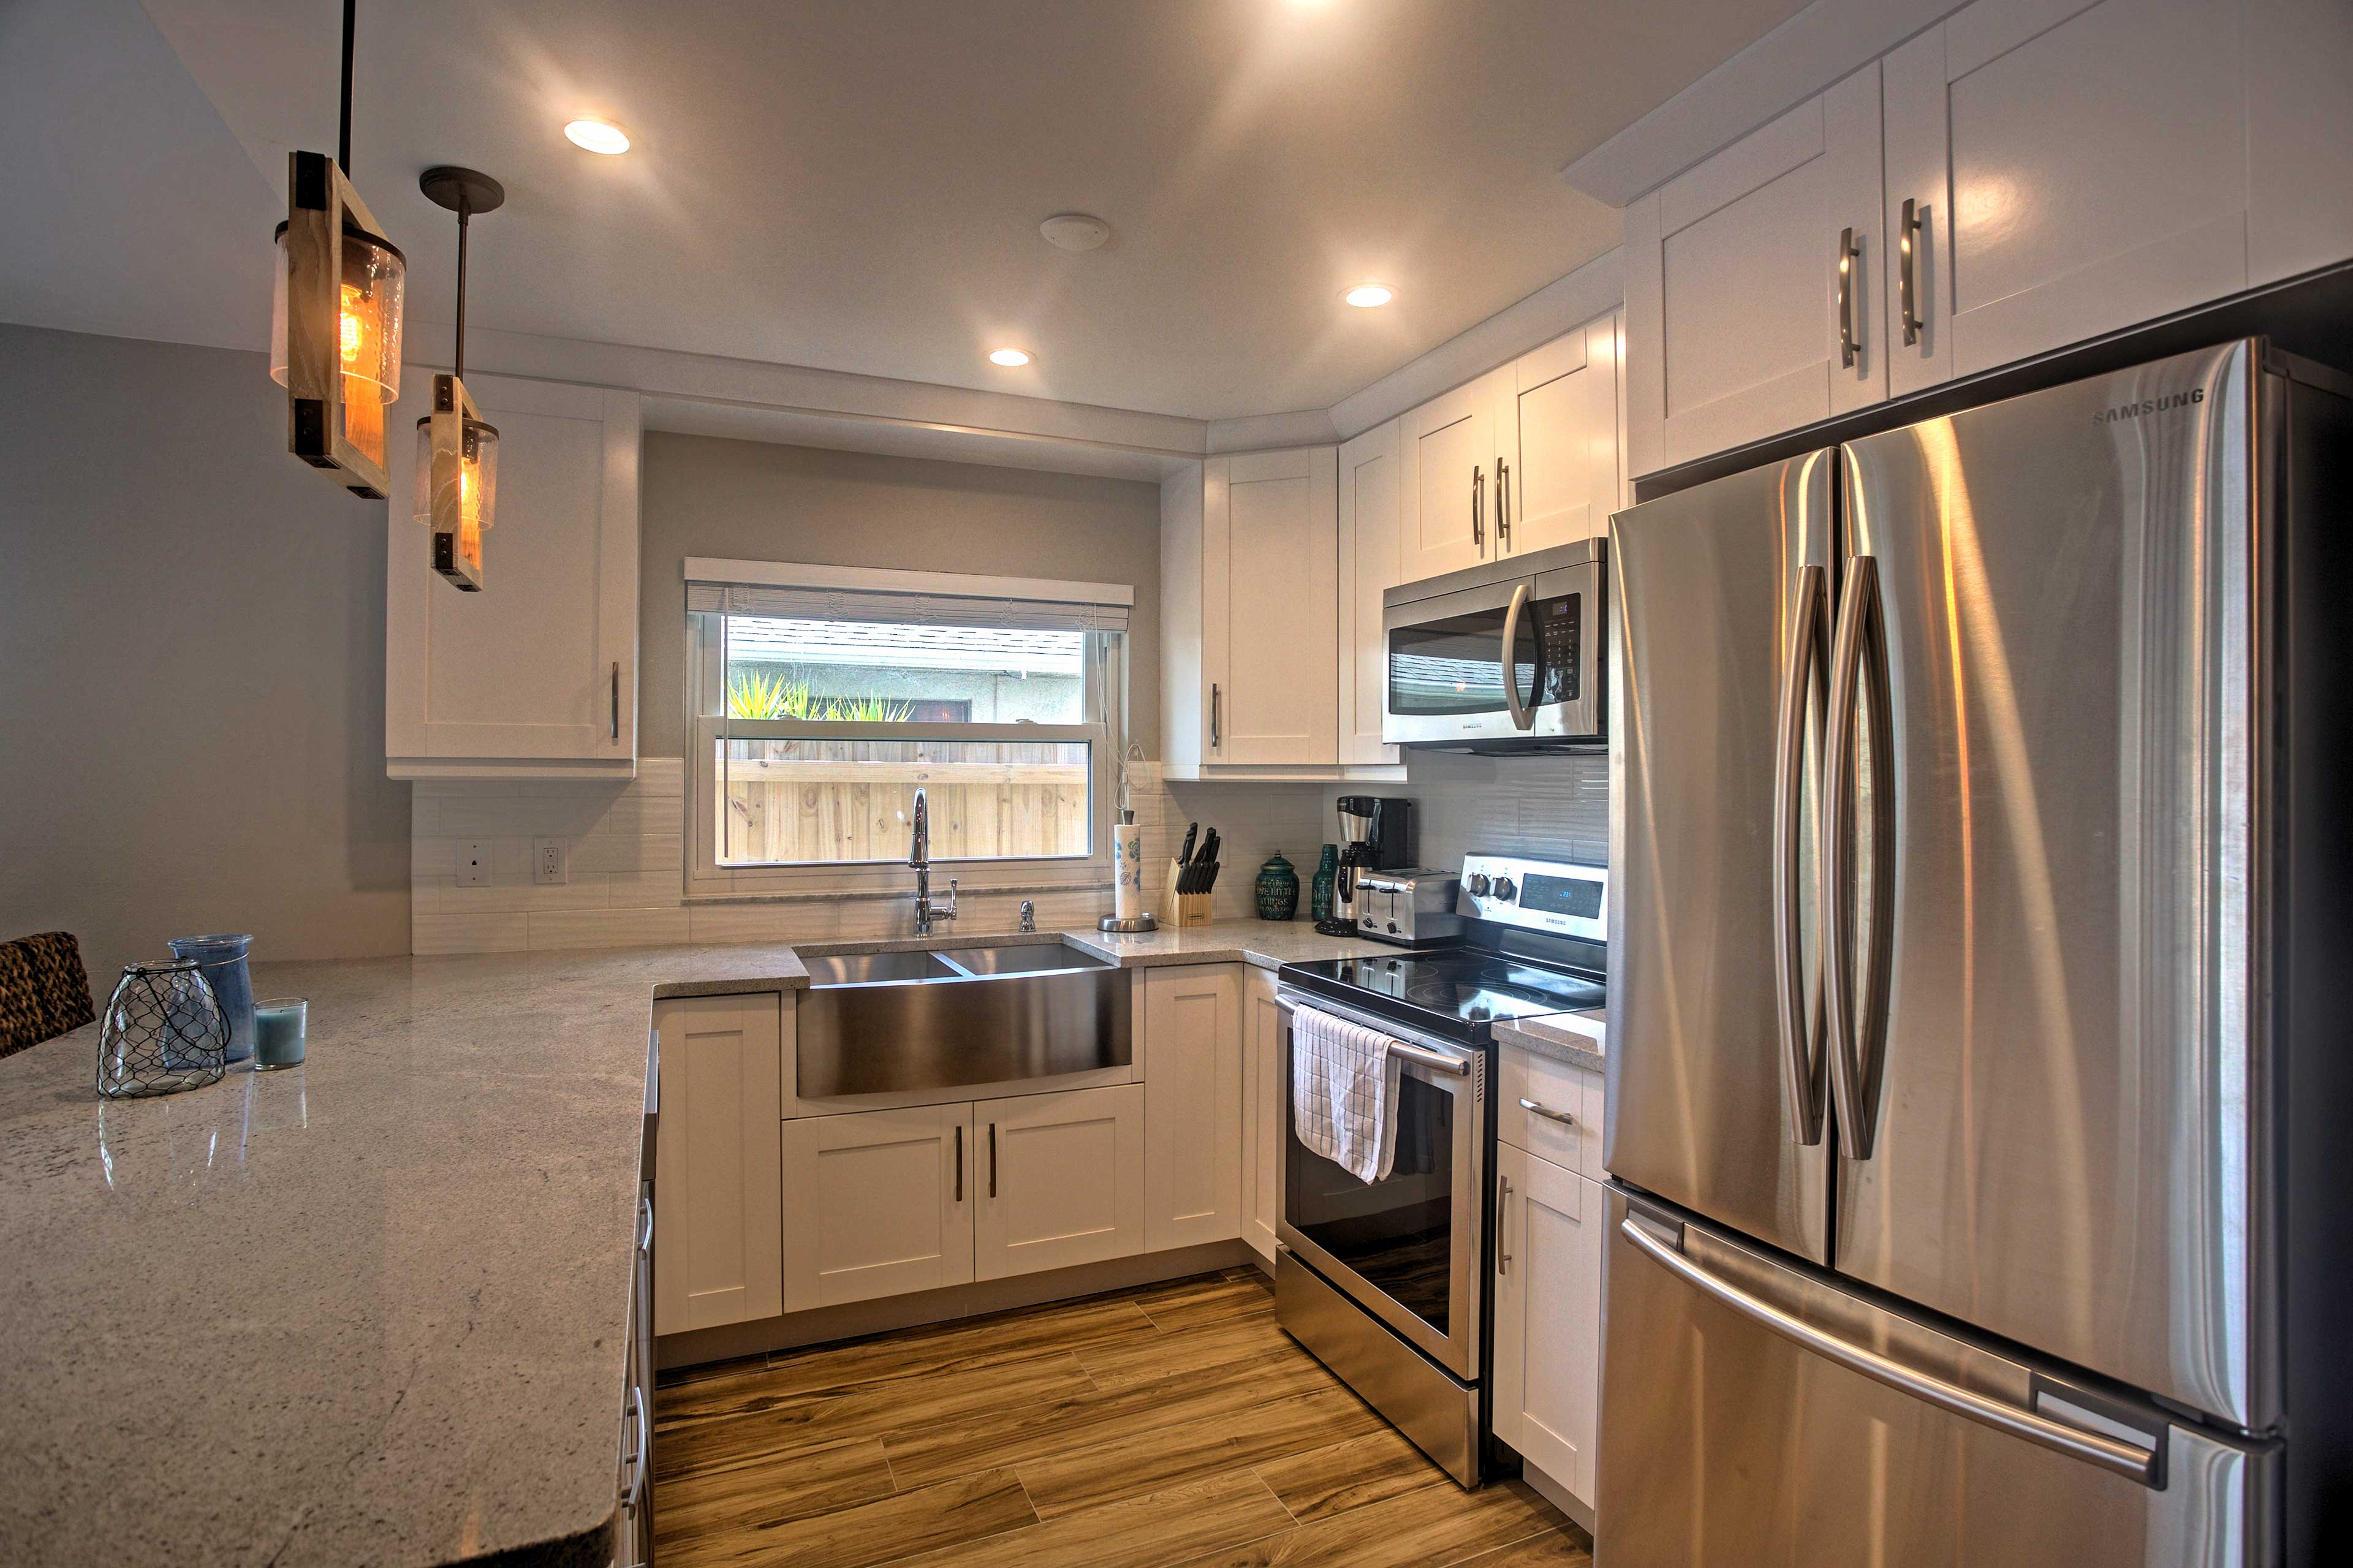 The fully equipped kitchen comes complete with stainless steal appliances.